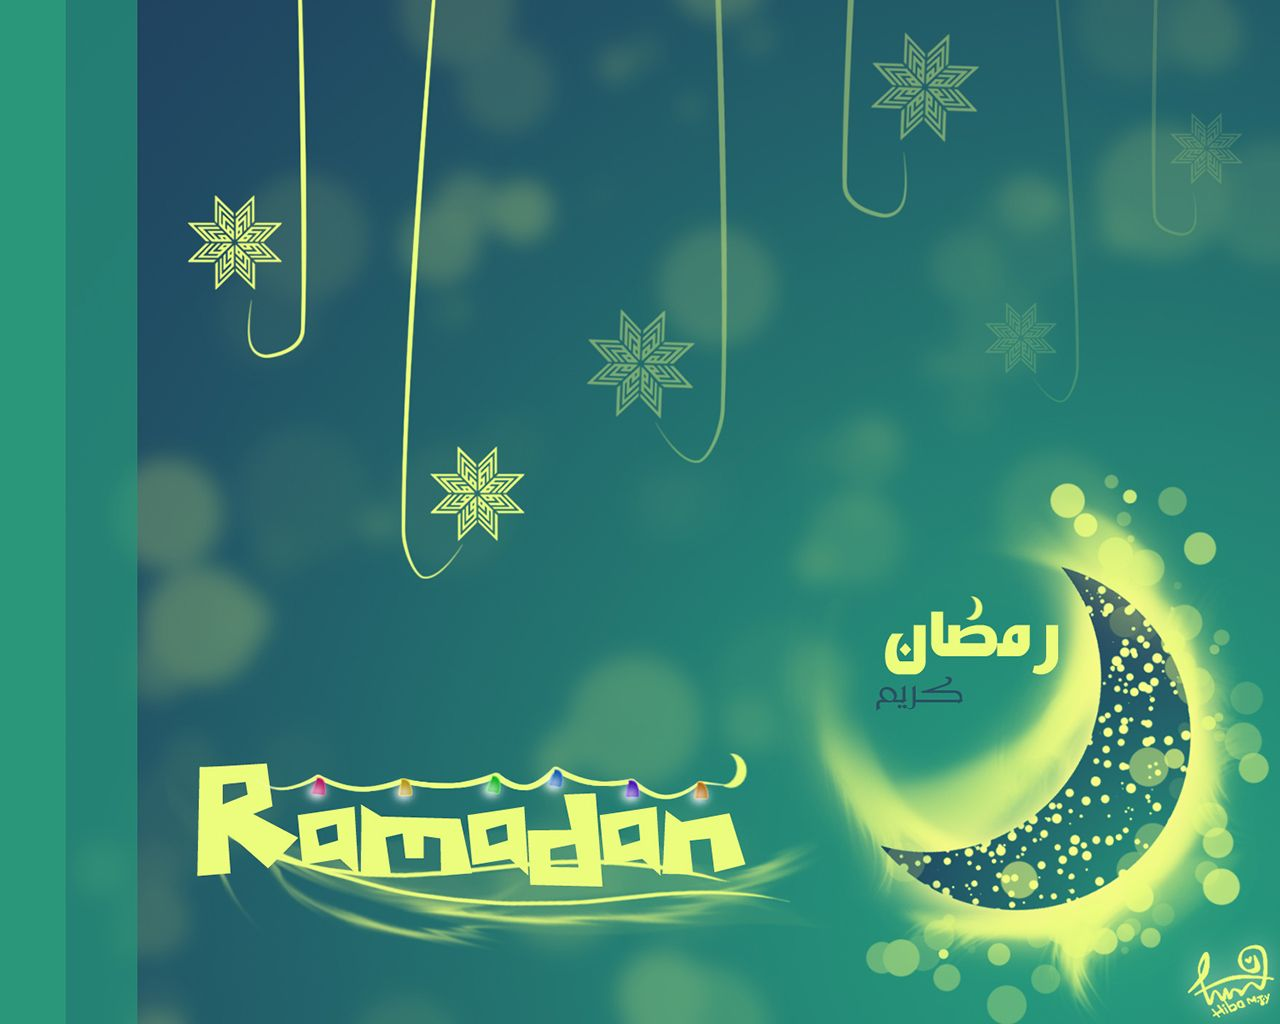 Ramadan Hd Wallpaper Islamic Background Image Ramadan Wallpaper